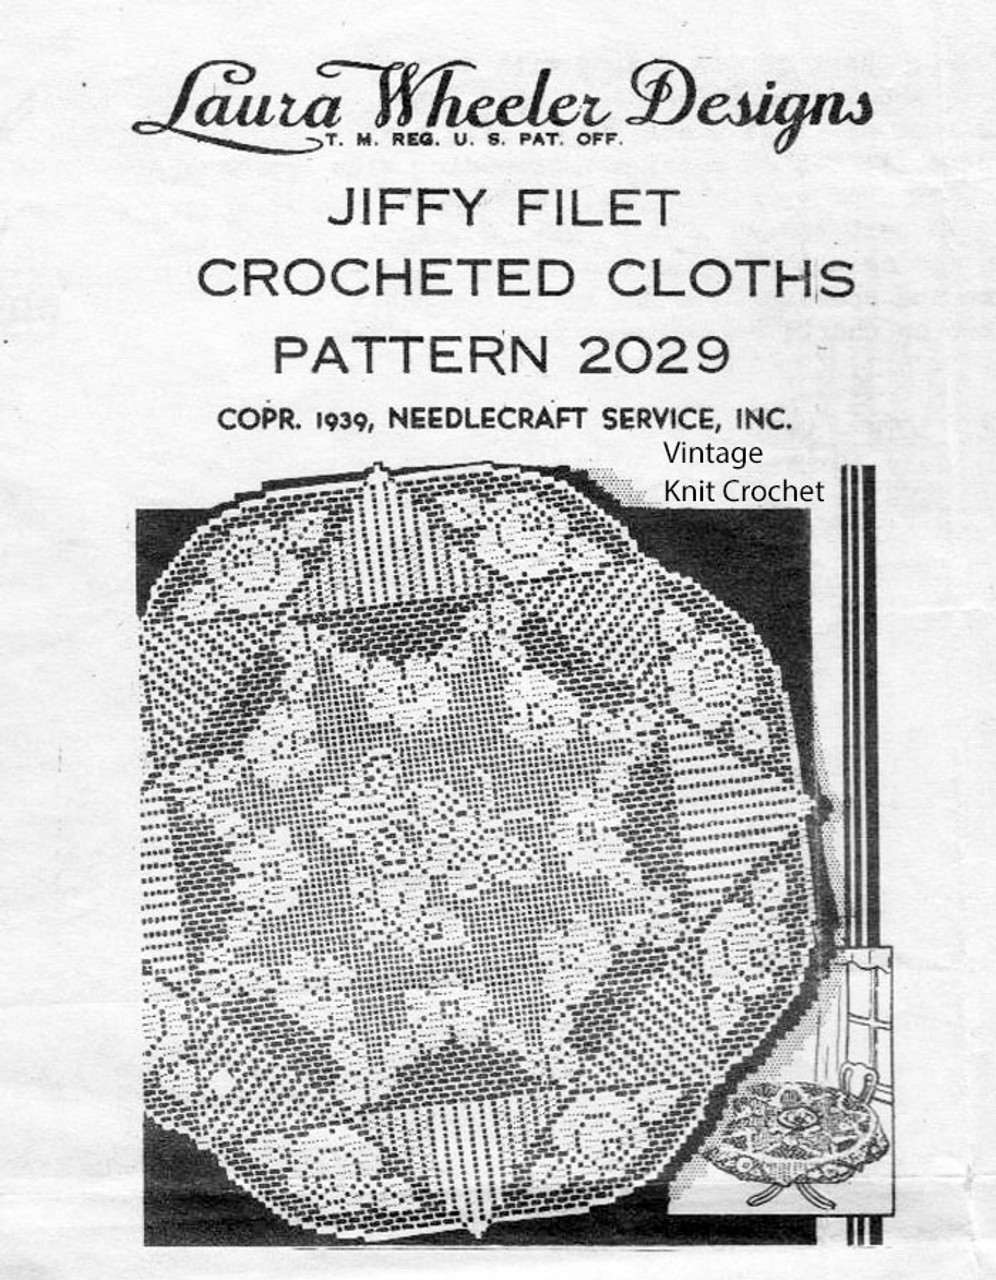 Filet Crochet Round Tablecloth Pattern Designs 2029